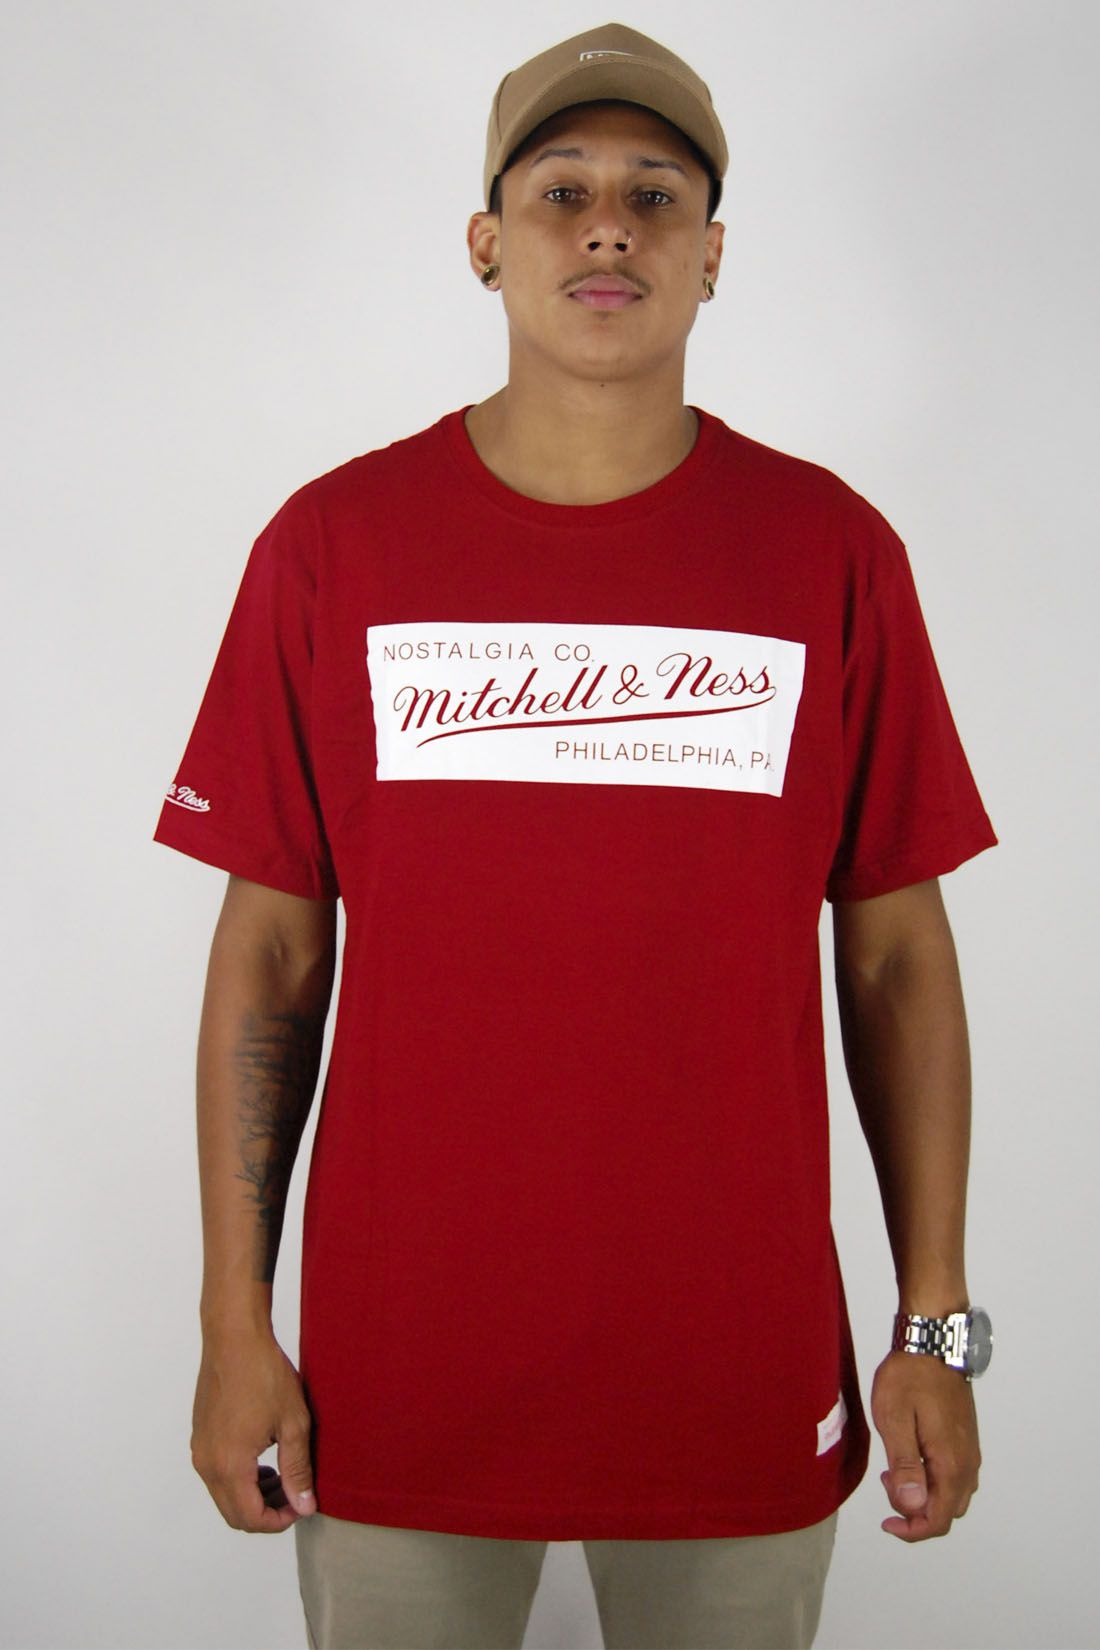 Camiseta Nostalgia CO Mitchell & Ness